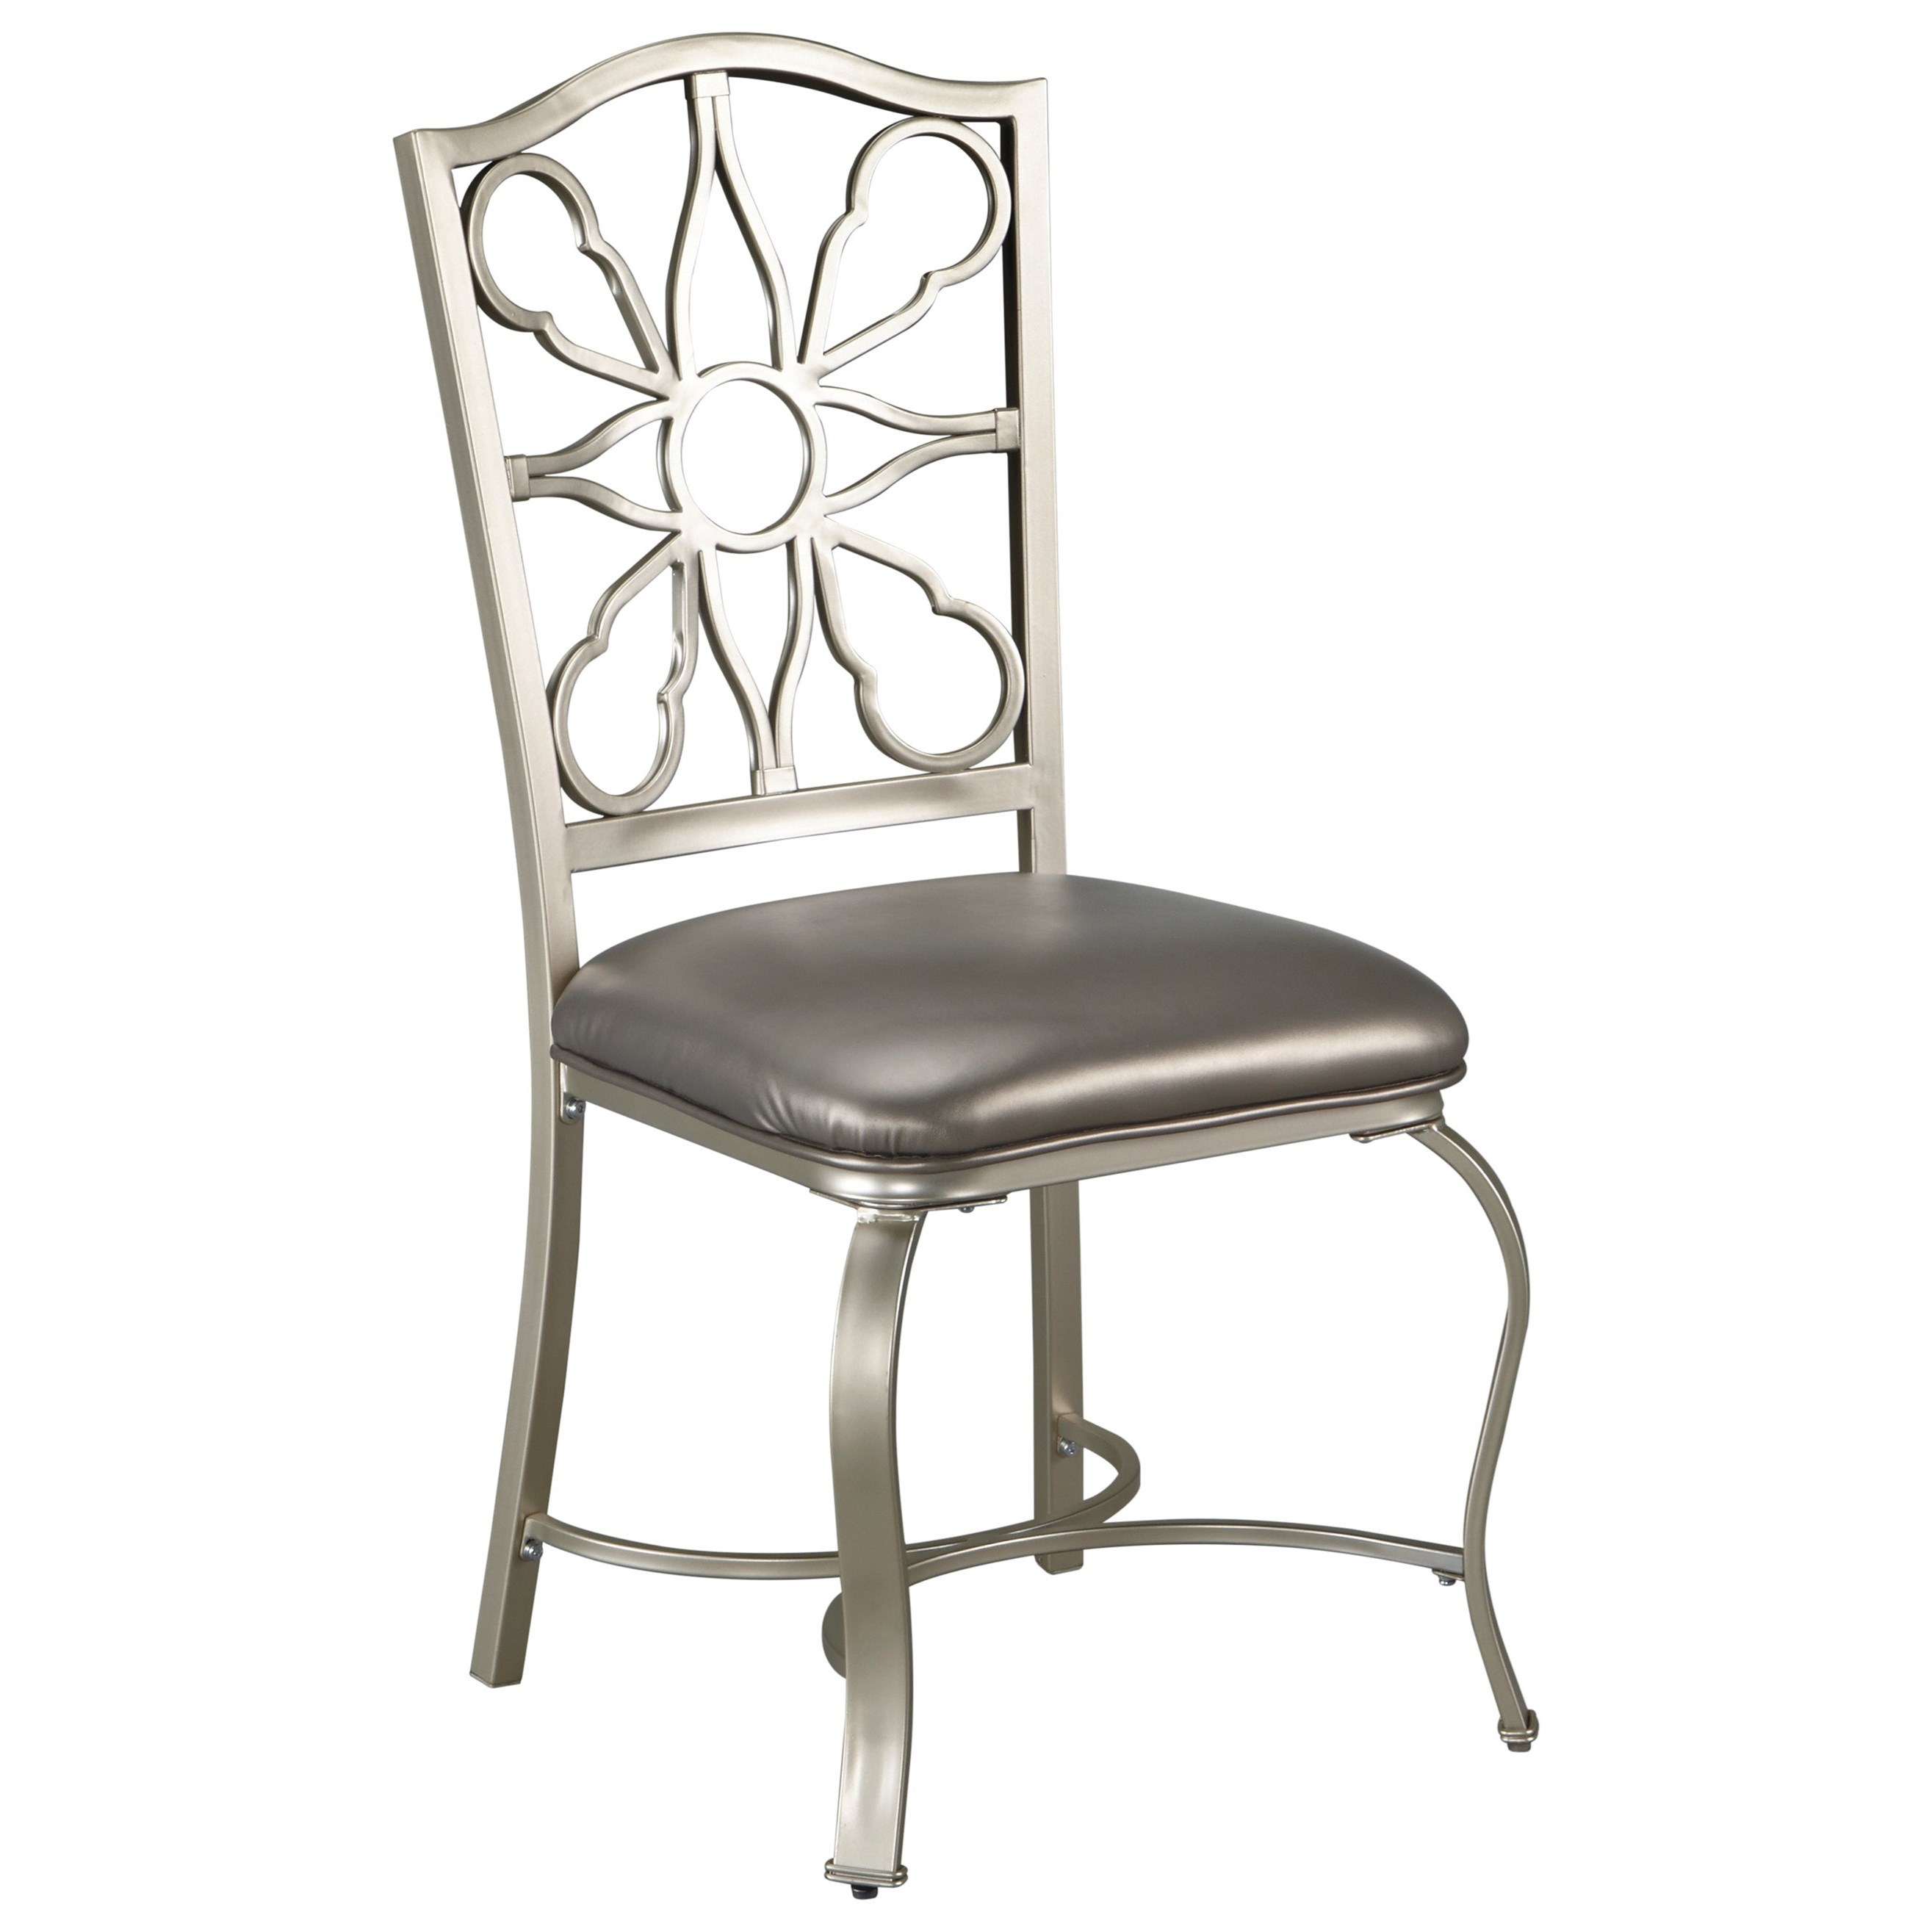 Signature Design by Ashley Shollyn Dining Upholstered Side Chair - Item Number: D390-01